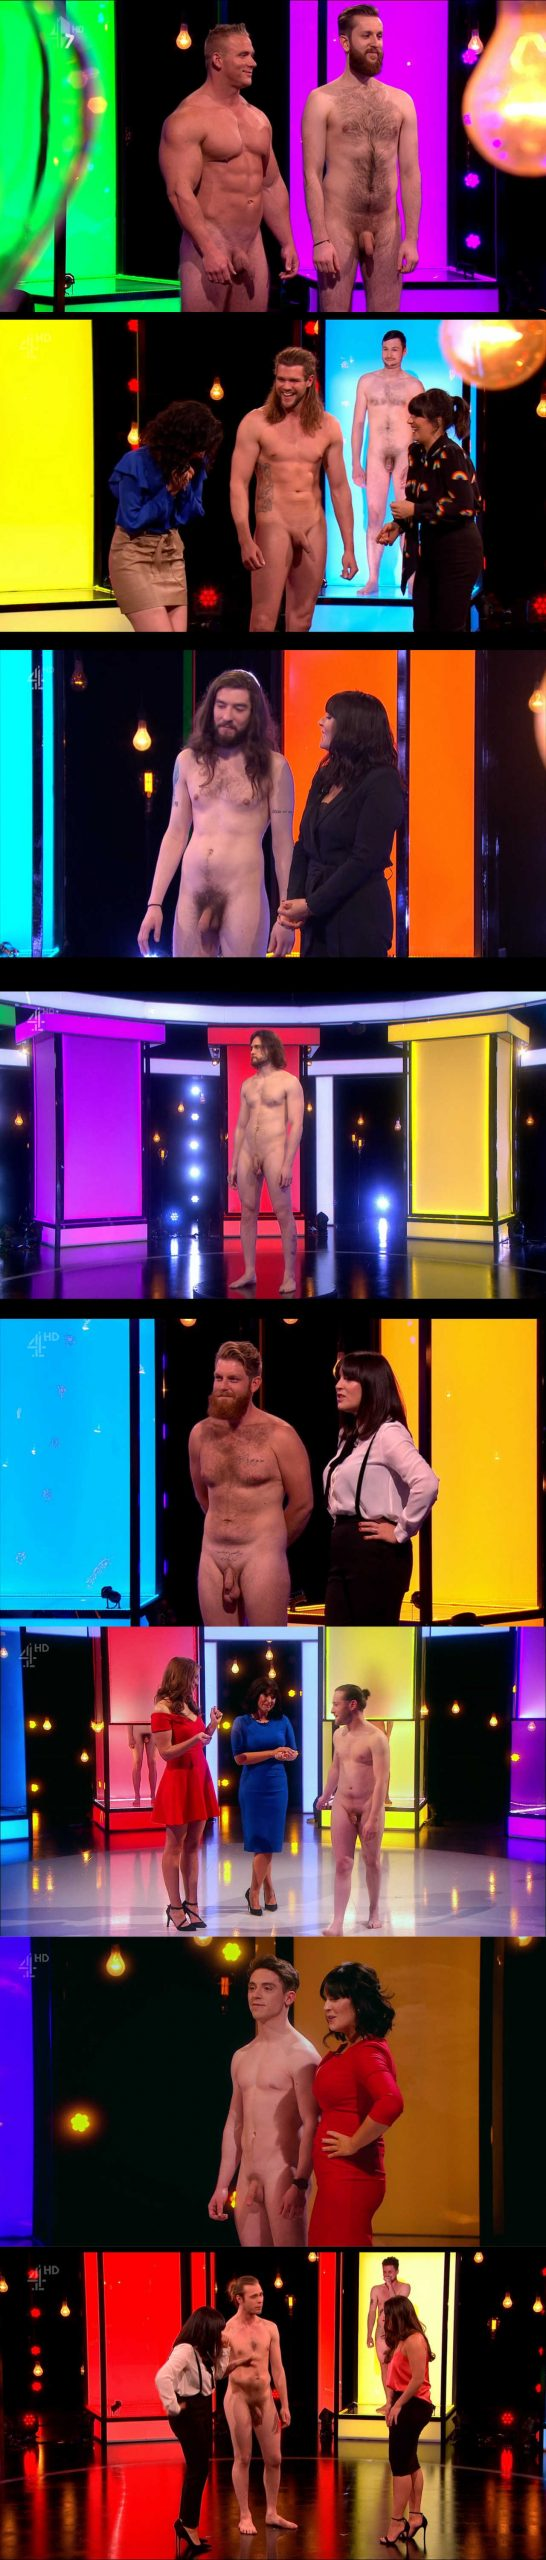 guys full frontal naked on tv naked attraction